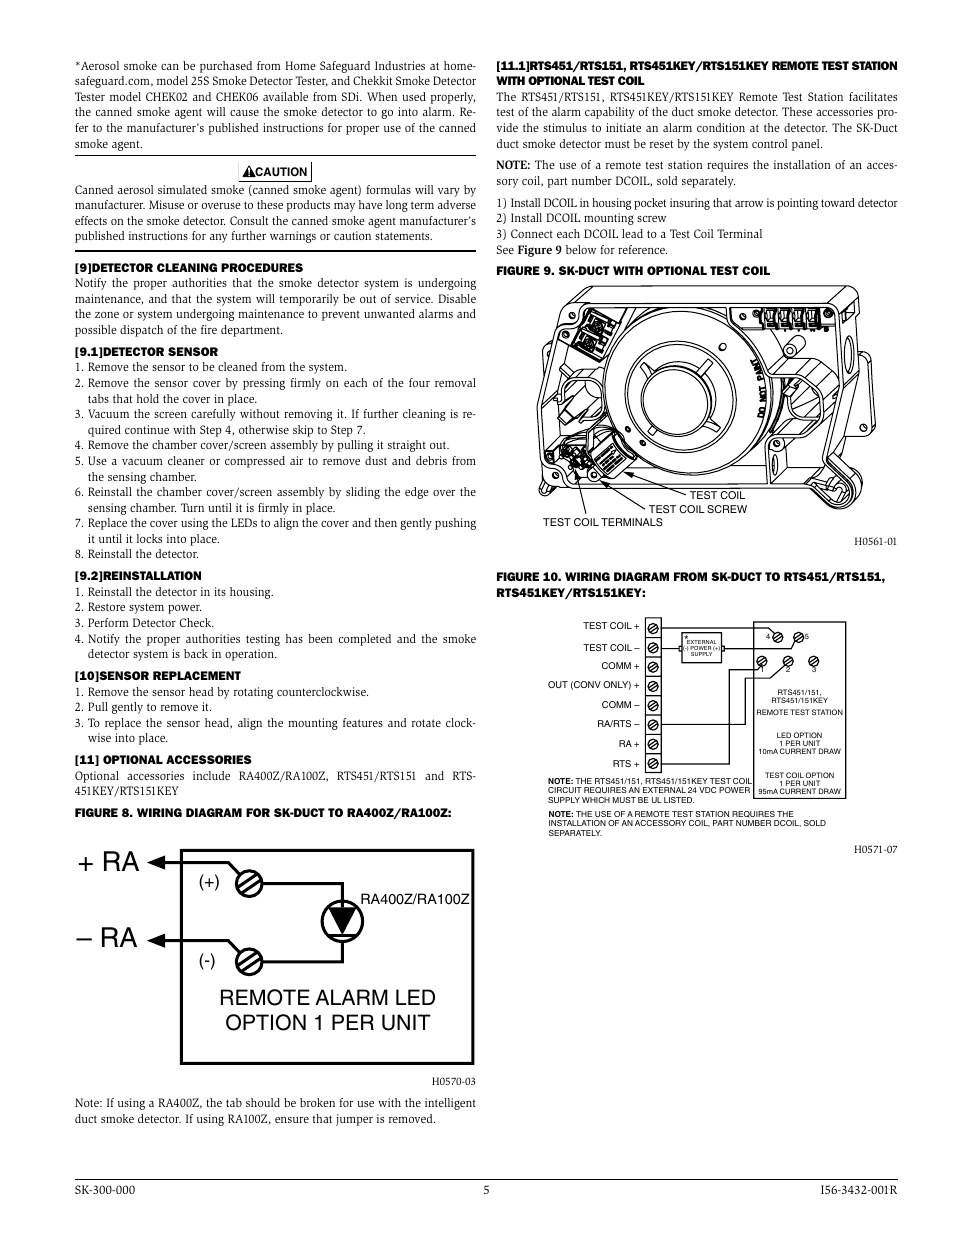 silentknight sk duct addressable photoelectric duct detector page5?resize\\=665%2C861 vista 100 wiring diagram lighting diagrams, friendship bracelet ademco vista 100 wiring diagram at edmiracle.co